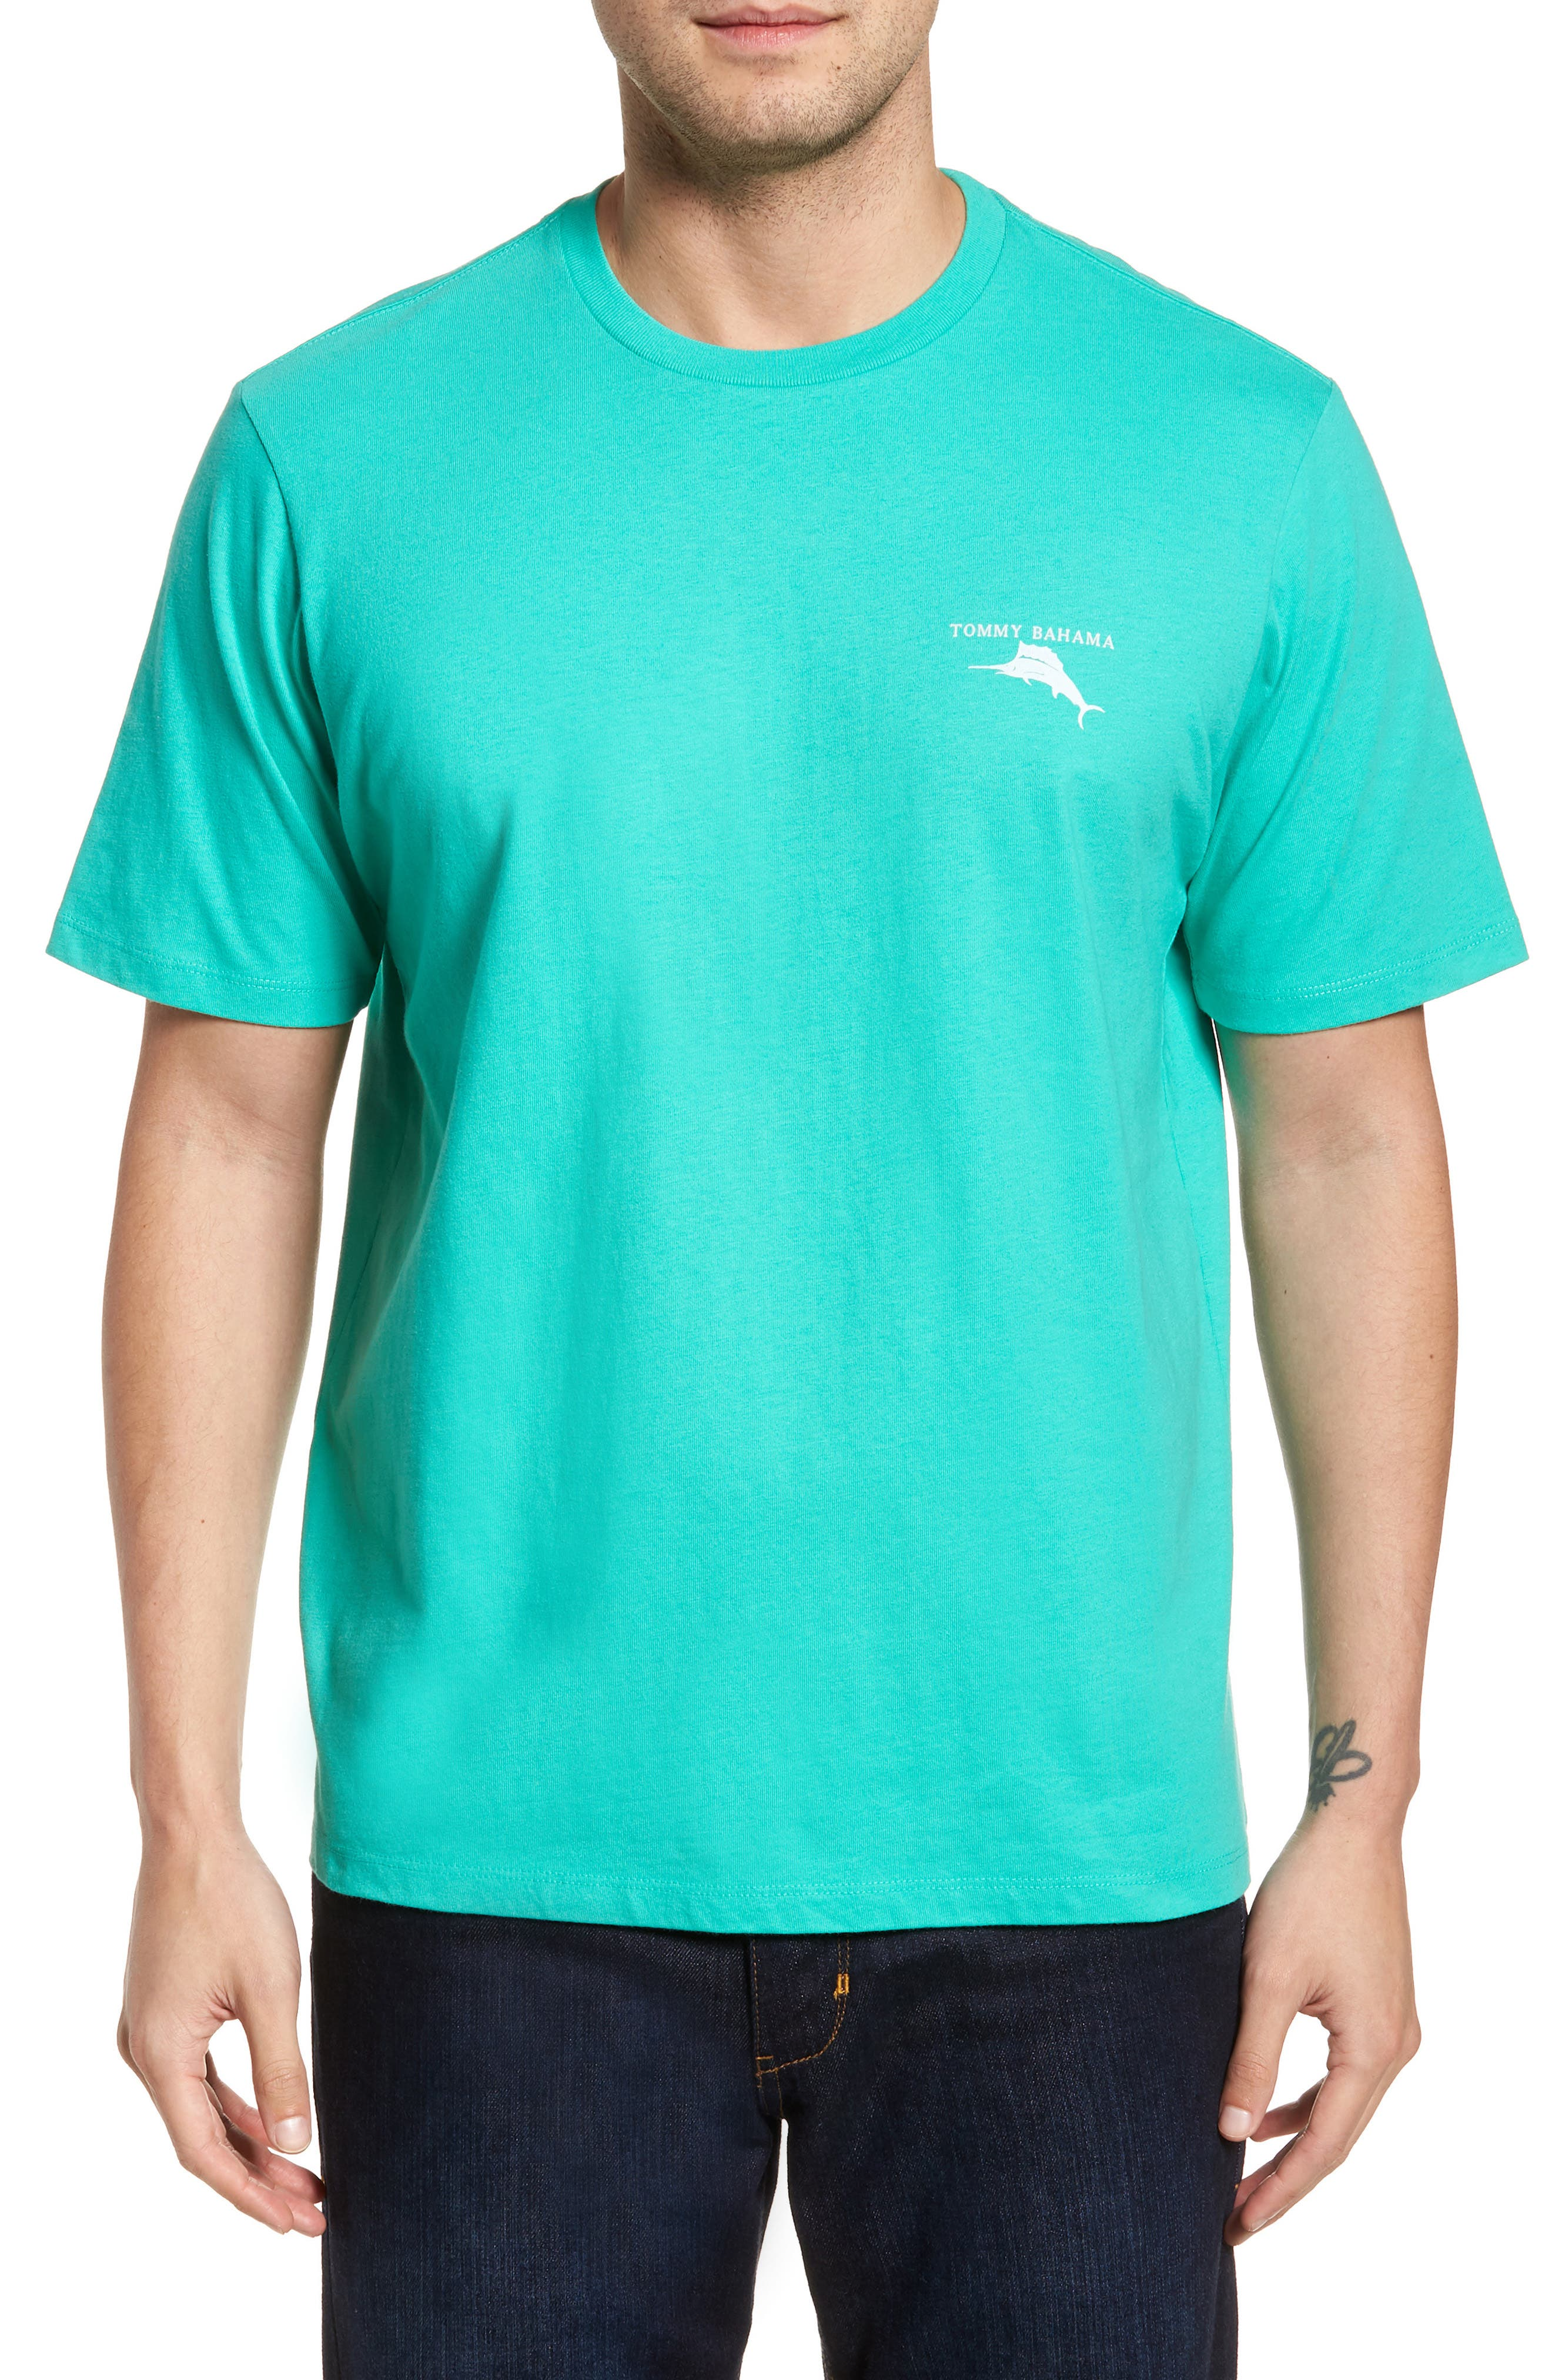 Keys to Happiness T-Shirt,                         Main,                         color, Cave Green